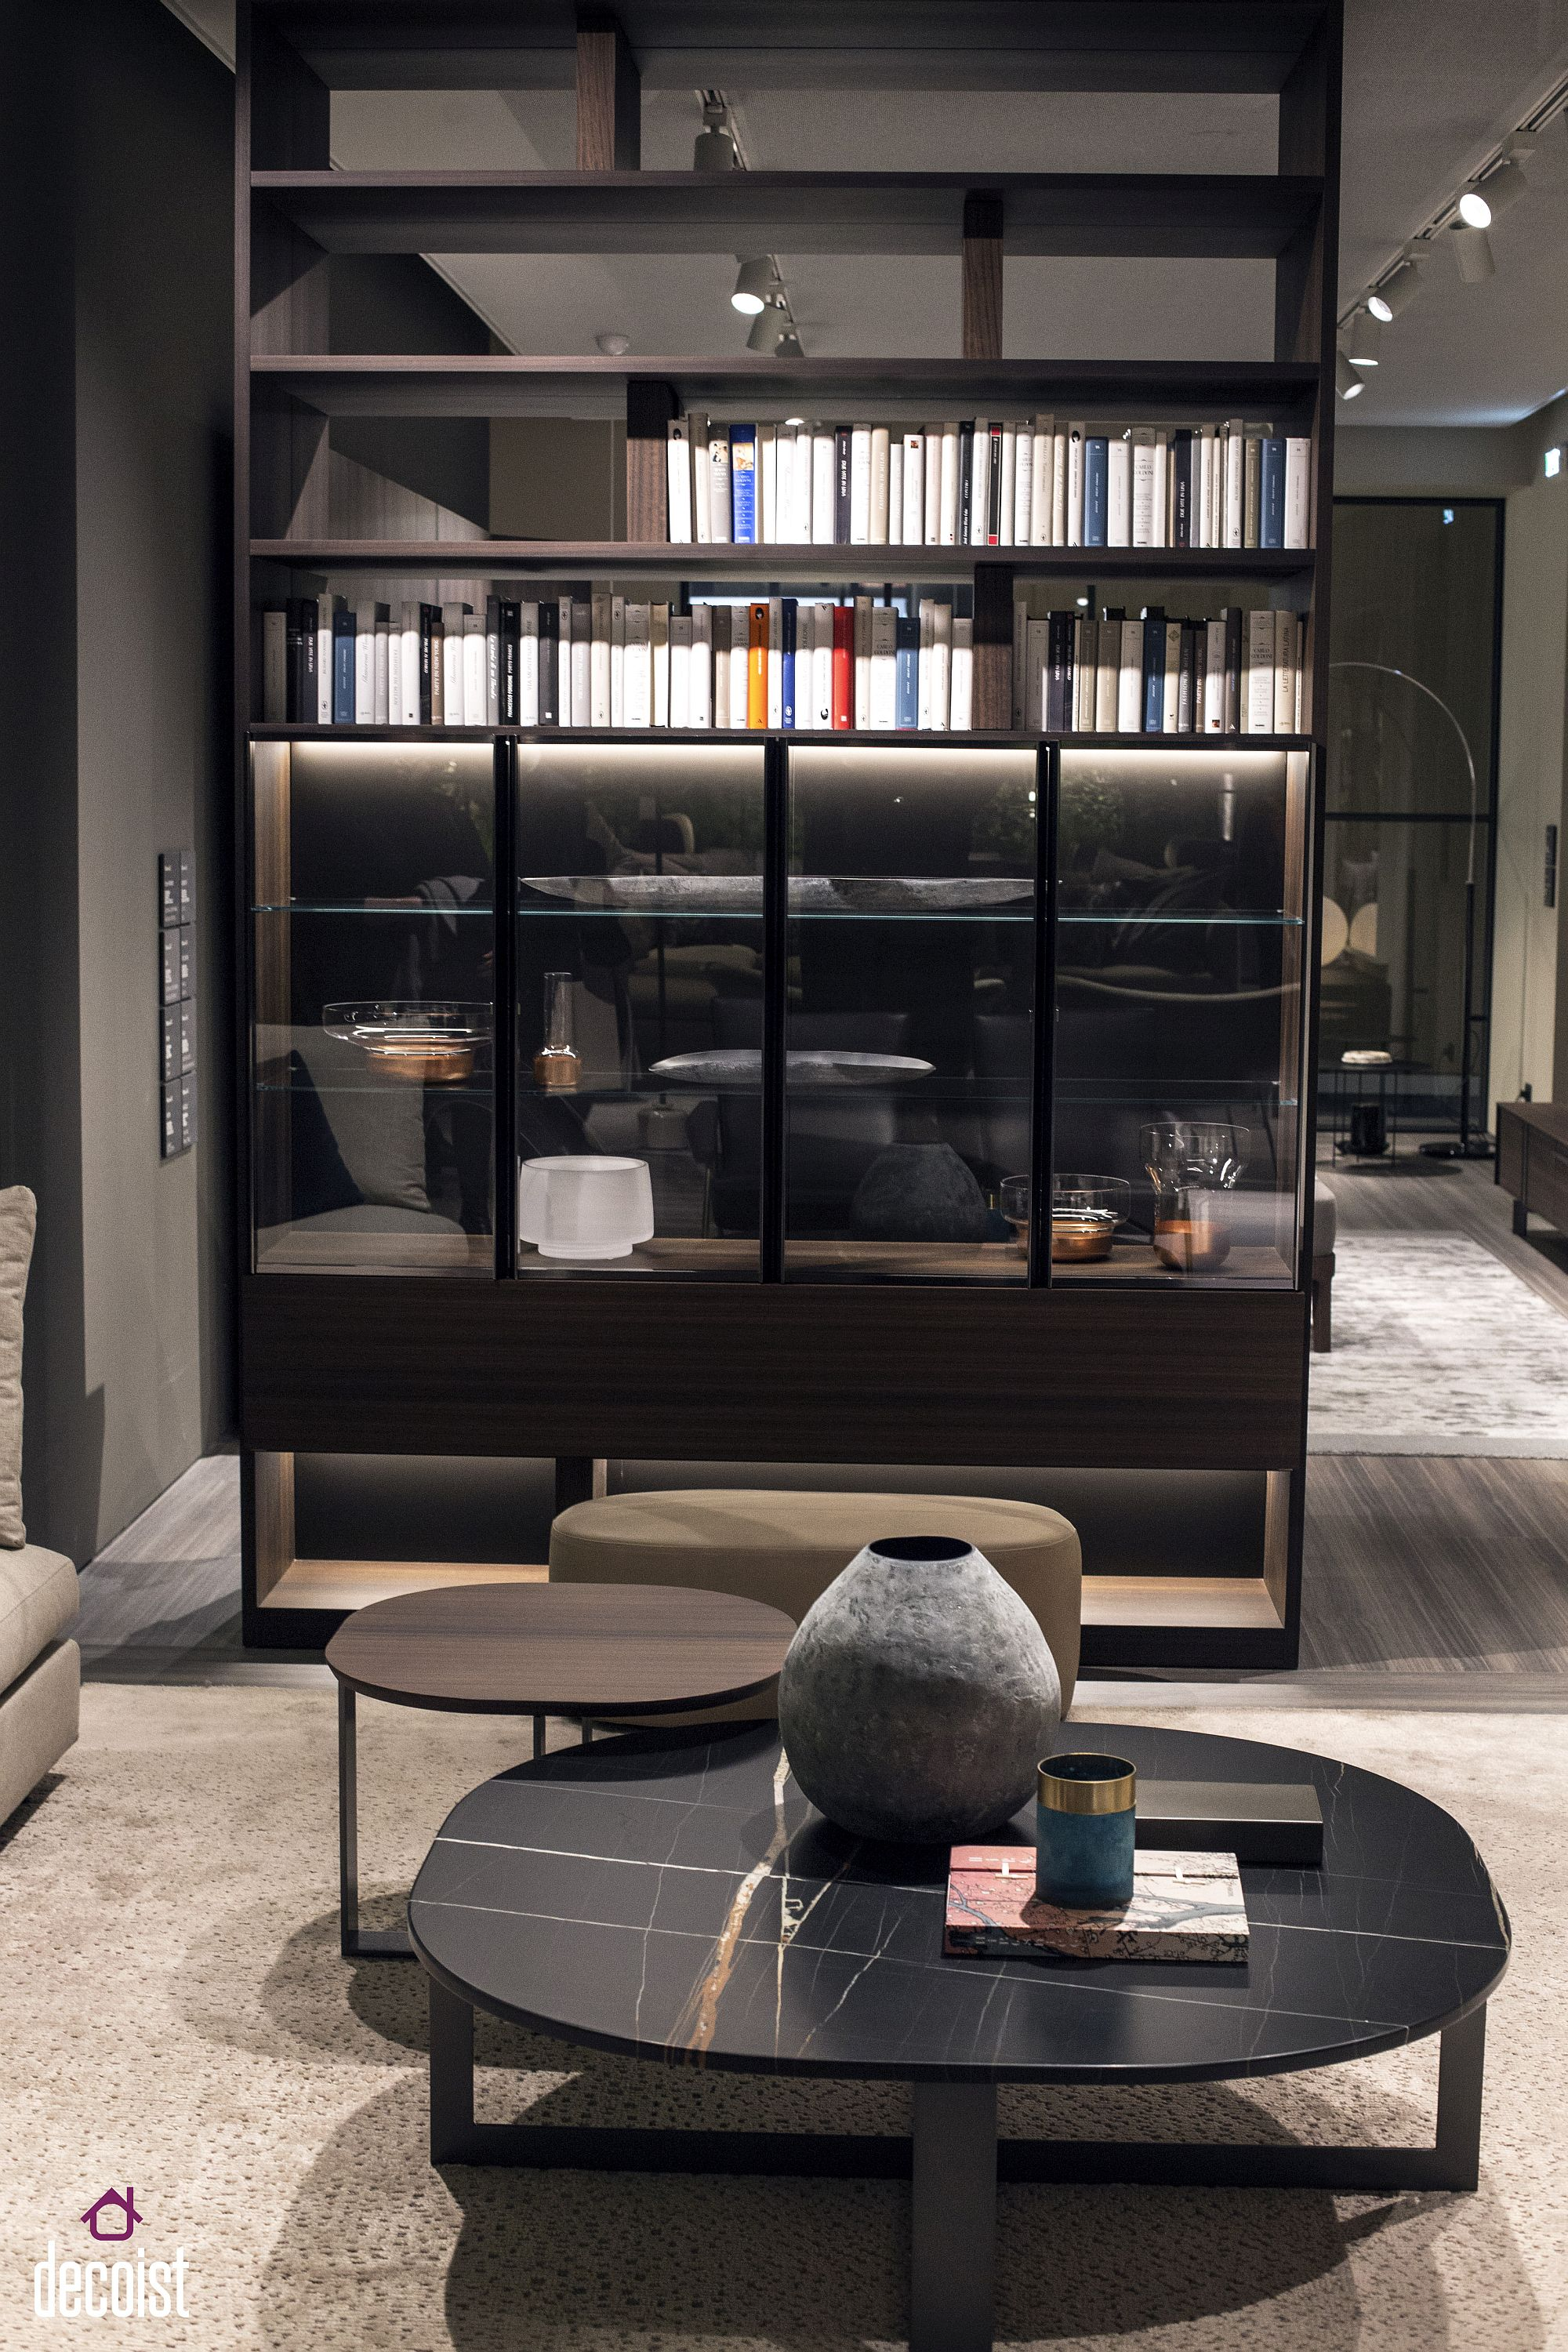 Standalone unit with bookshelf on top and cabinet below from Molteni & C is a great space-saver